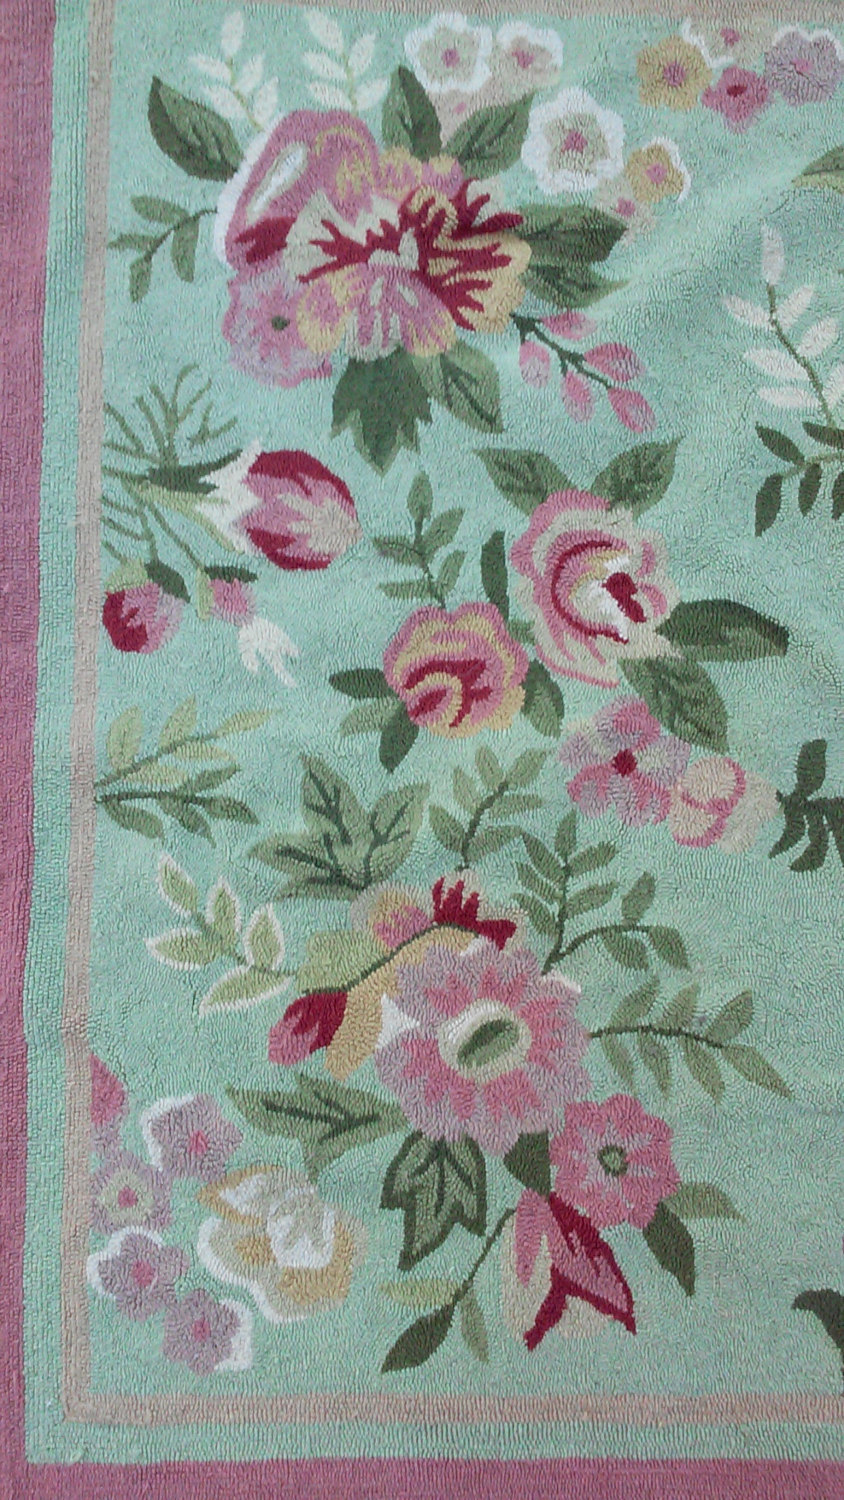 Vintage Hooked Wool Rug, Shabby Chic Pink and Green Roses-4 X 7